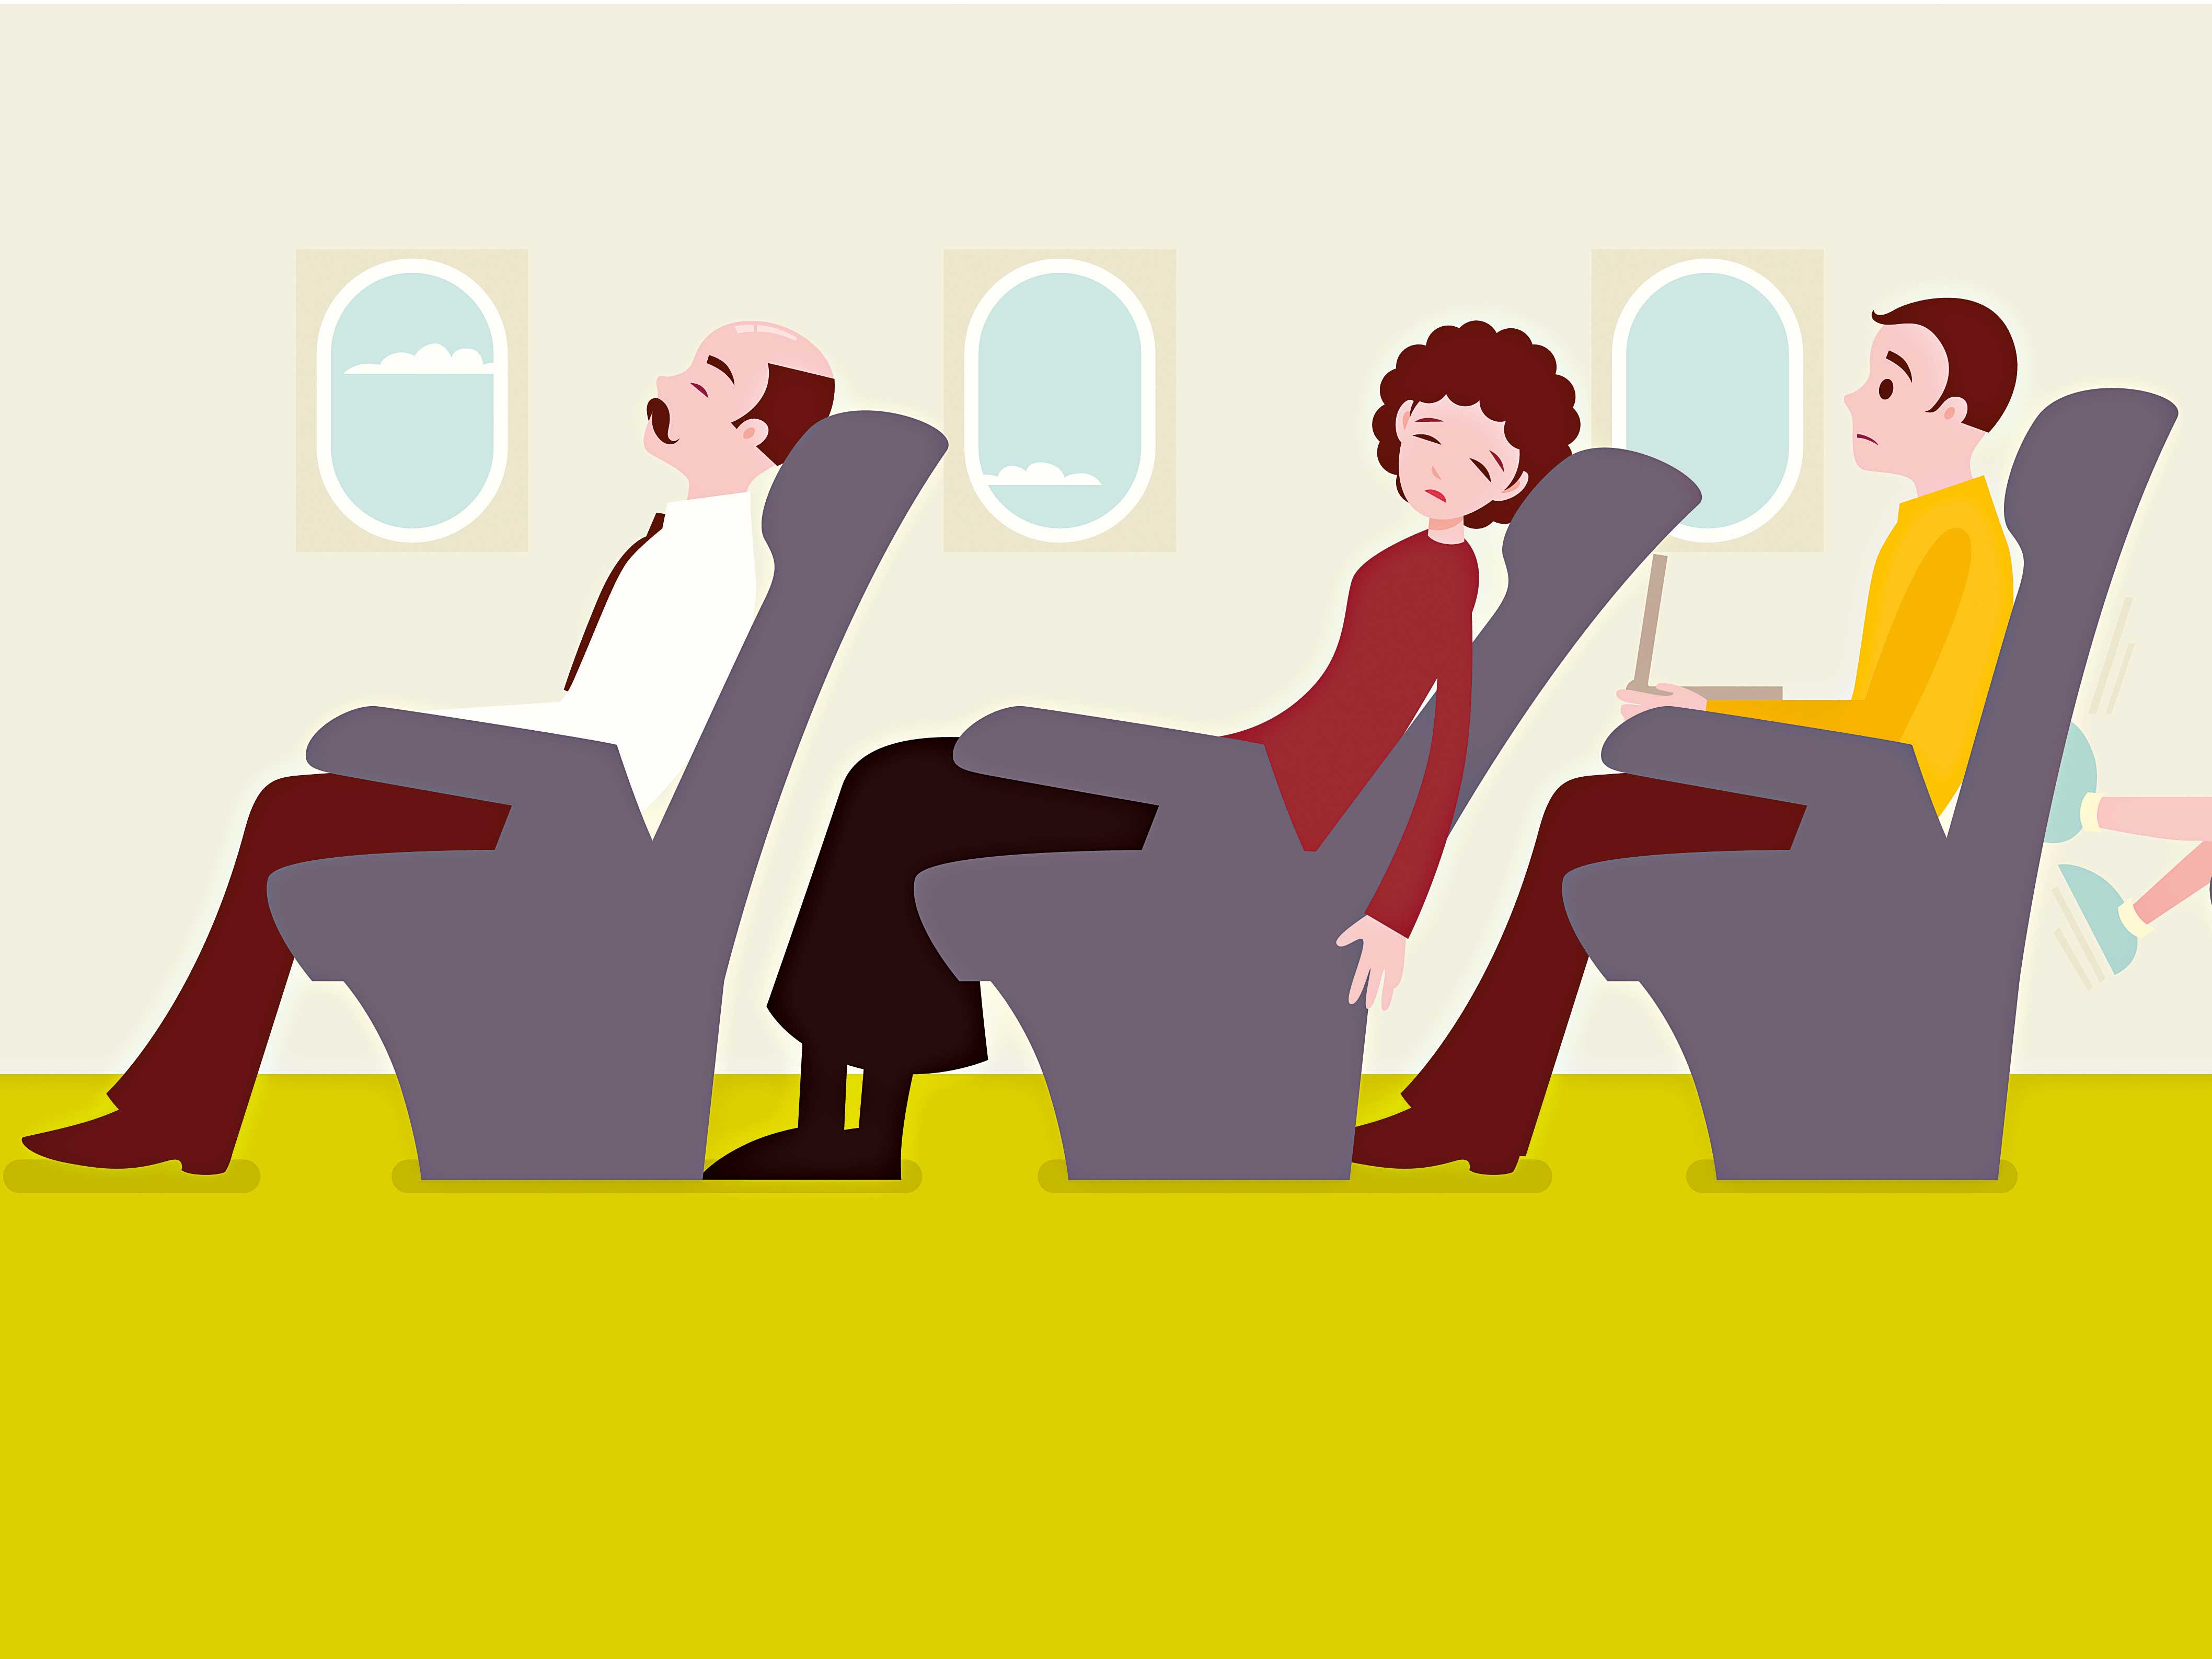 Any discussion of inflight etiquette is incomplete without mention of the age-old reclining debate